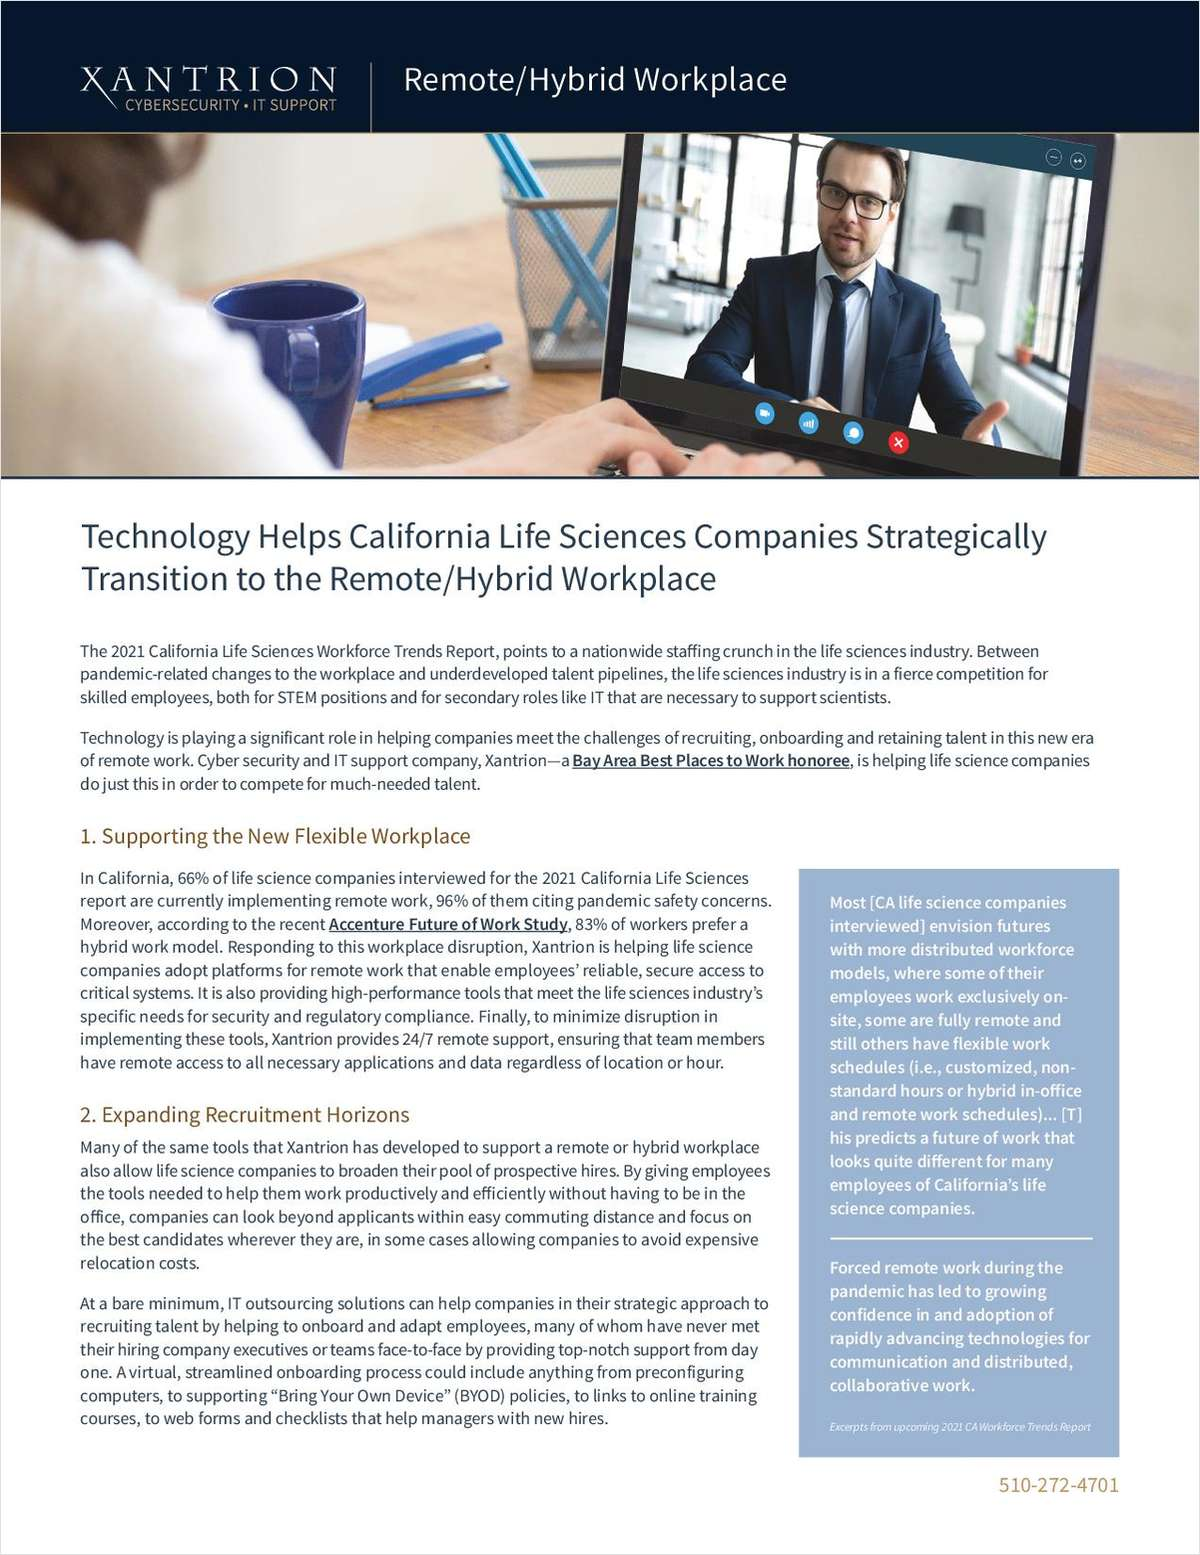 Technology Helps California Life Sciences Companies Strategically  Transition to the Remote/Hybrid Workplace